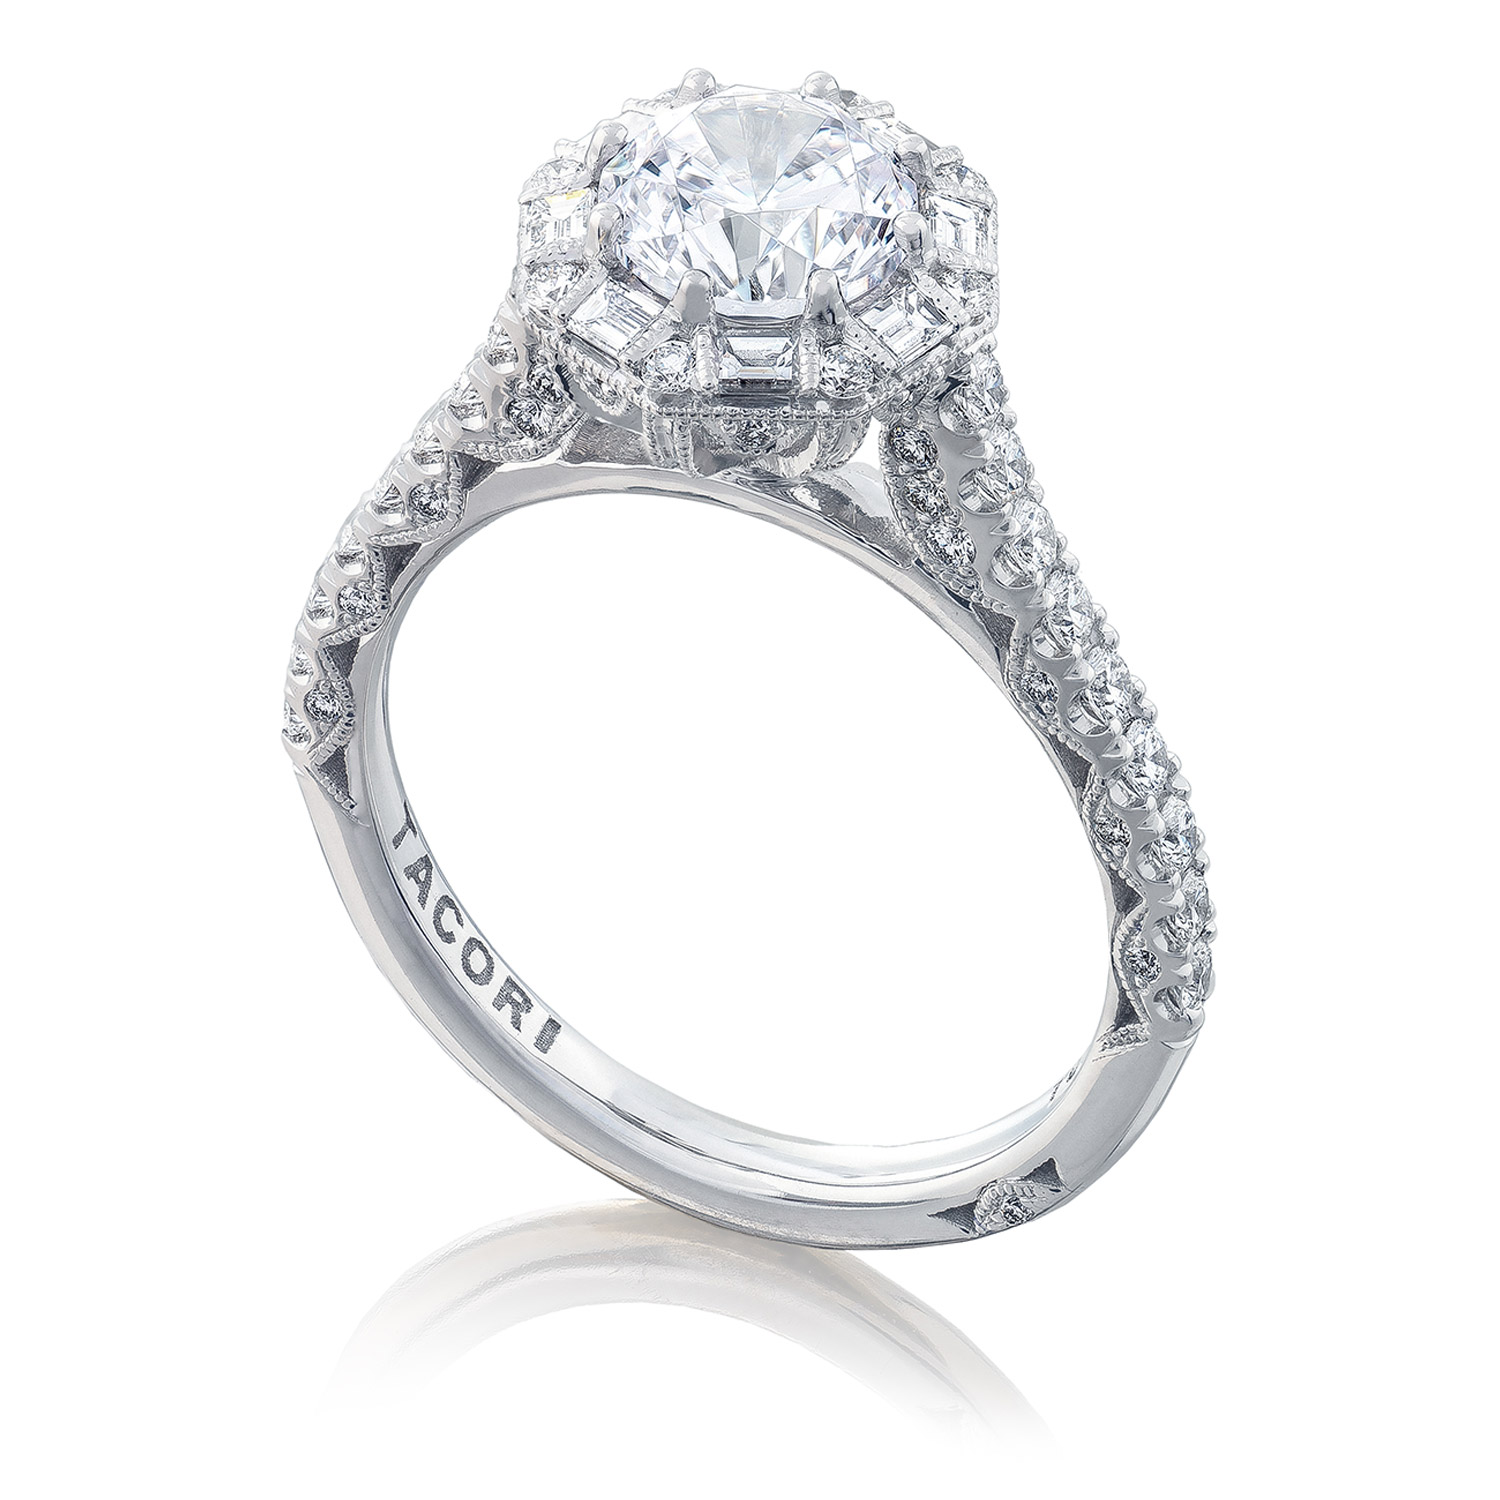 designers lady ring fashion solitaire diamond white designer s rings karat forevermark ladys